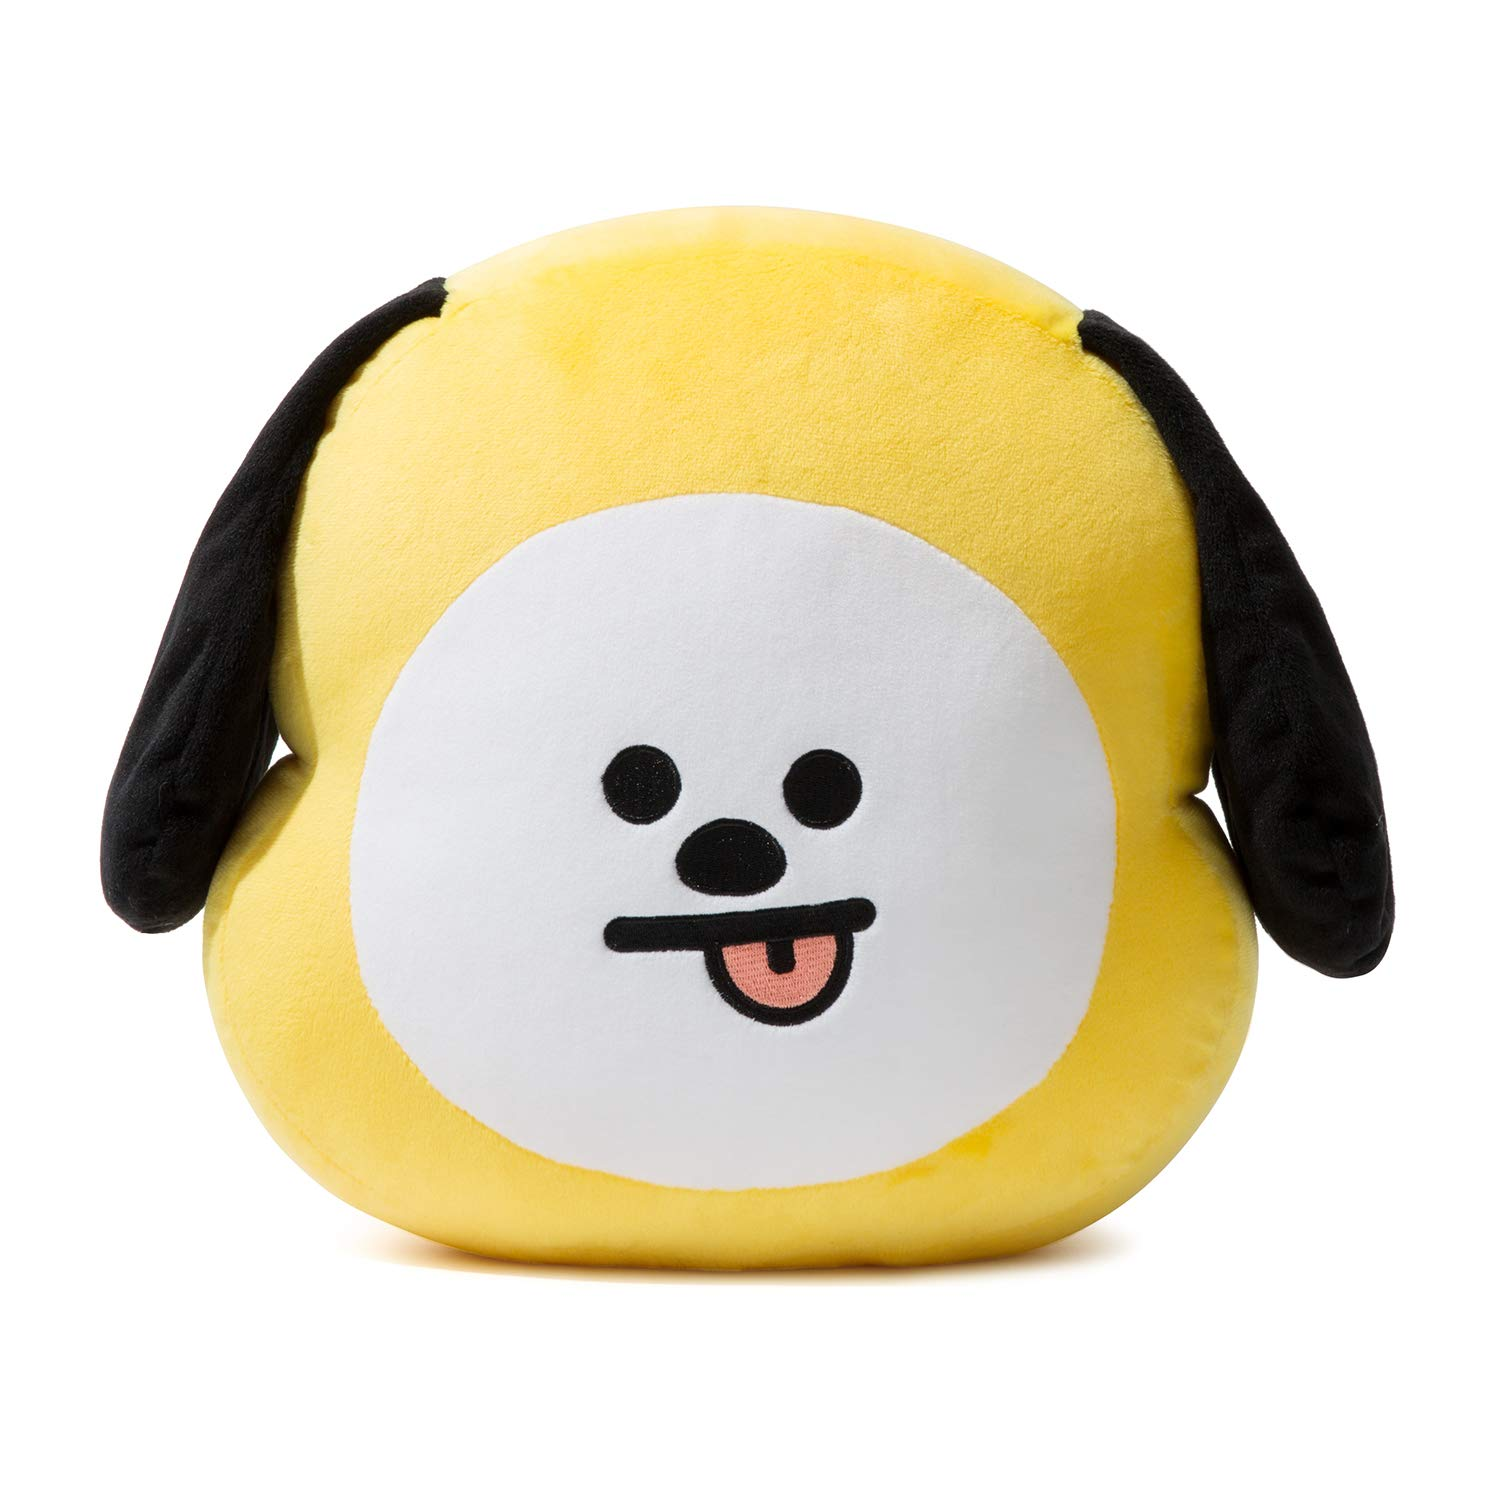 BT21 Chimmy Cushion 16.5 inches Yellow Line Friends